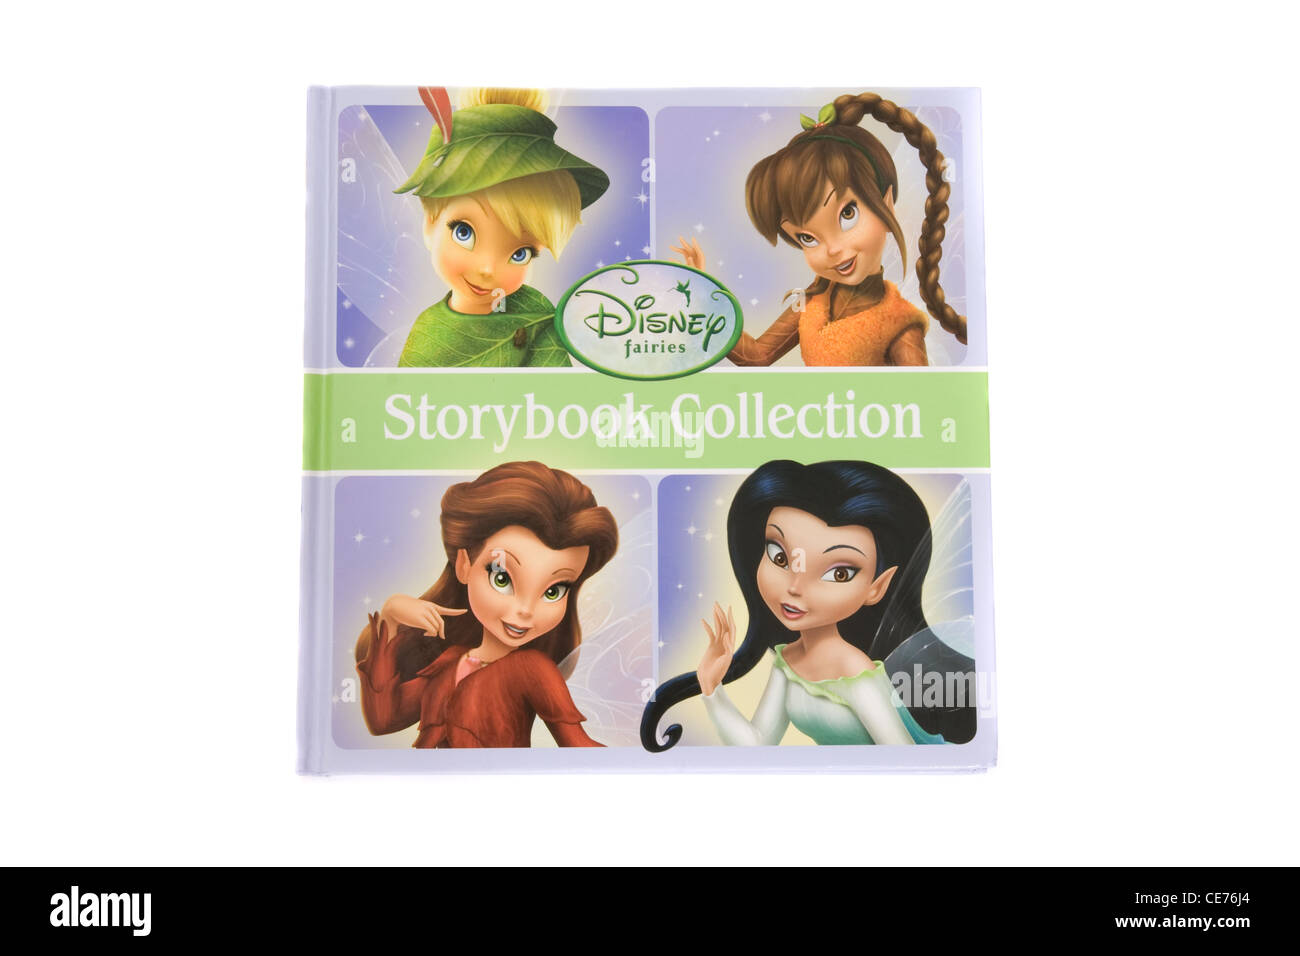 Disney's Fairies Storybook Collection. - Stock Image